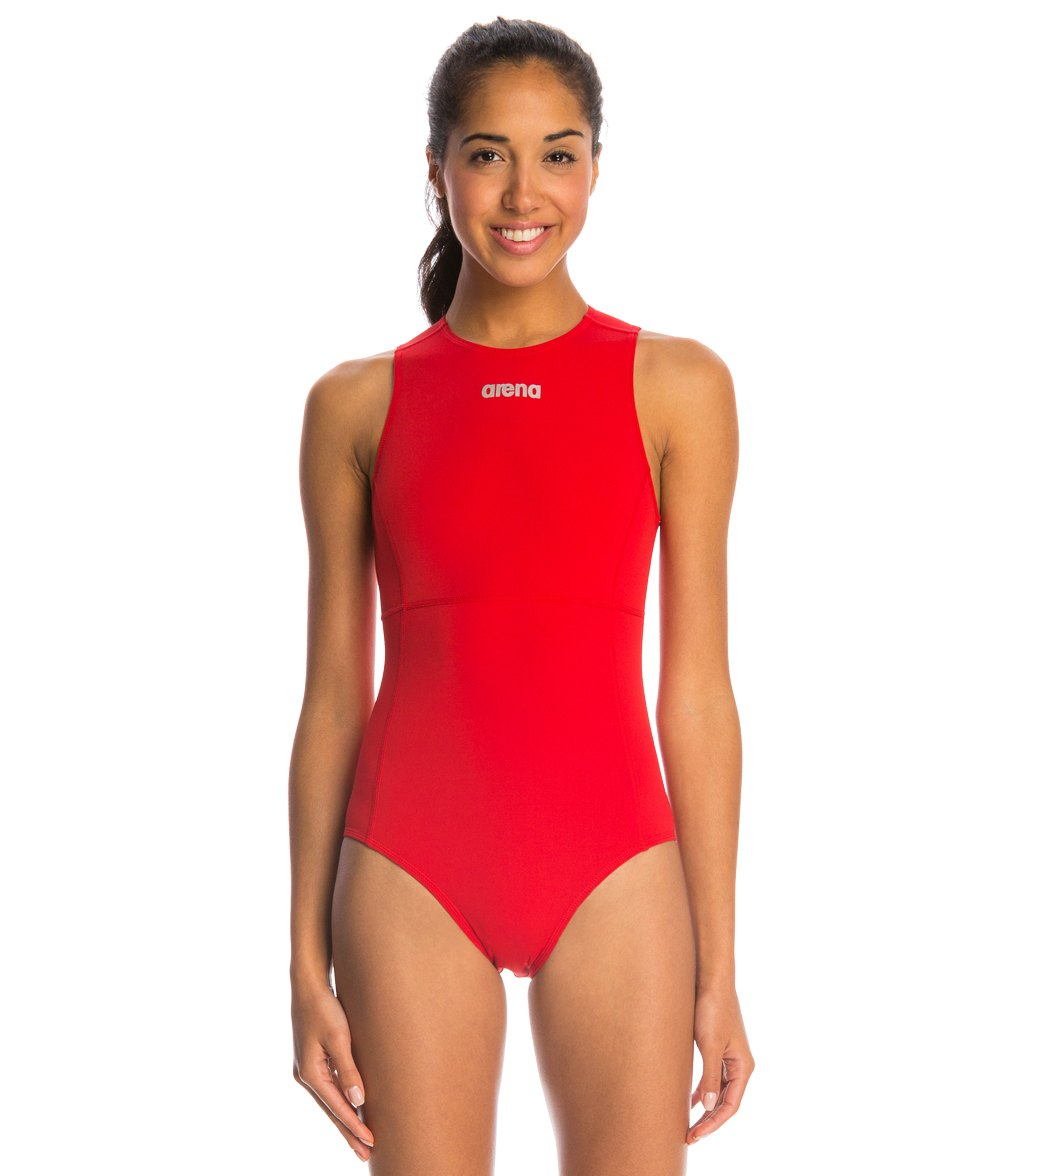 ARENA Female Mission Water Polo One Piece - Youth 59115